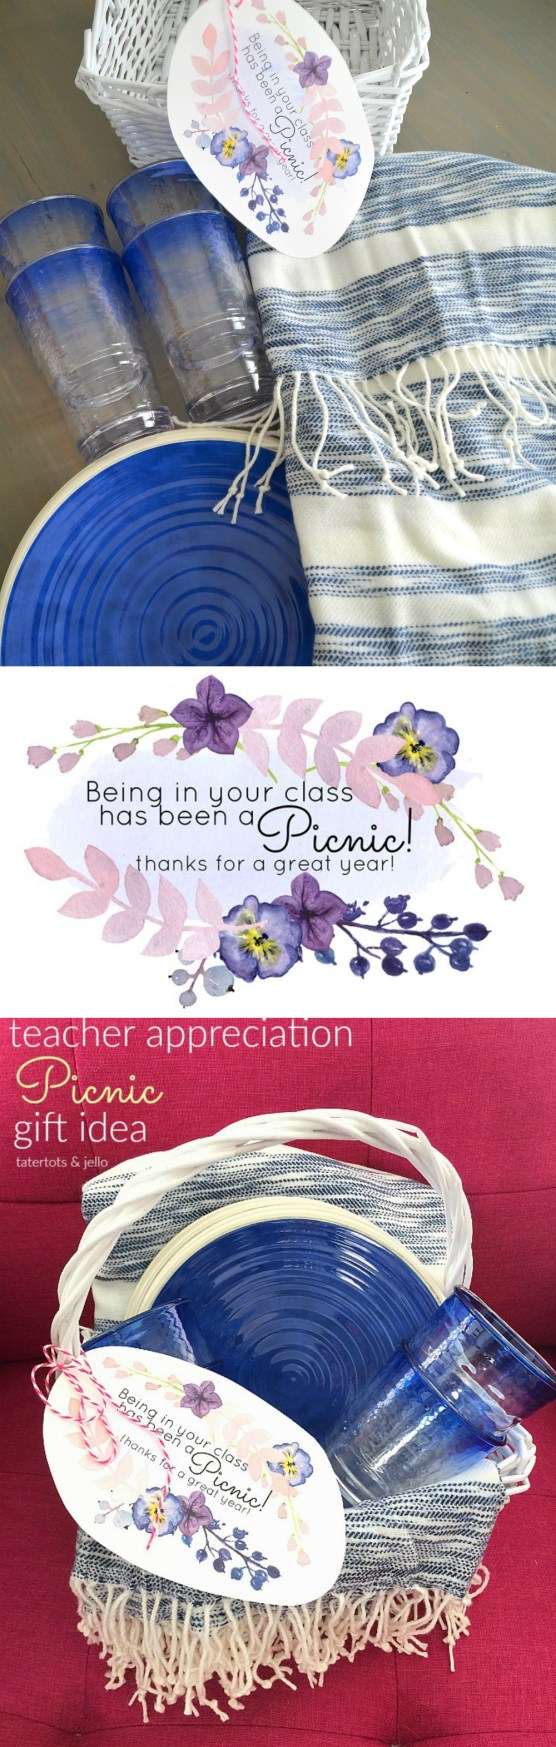 teacher appreciation picnic gift idea